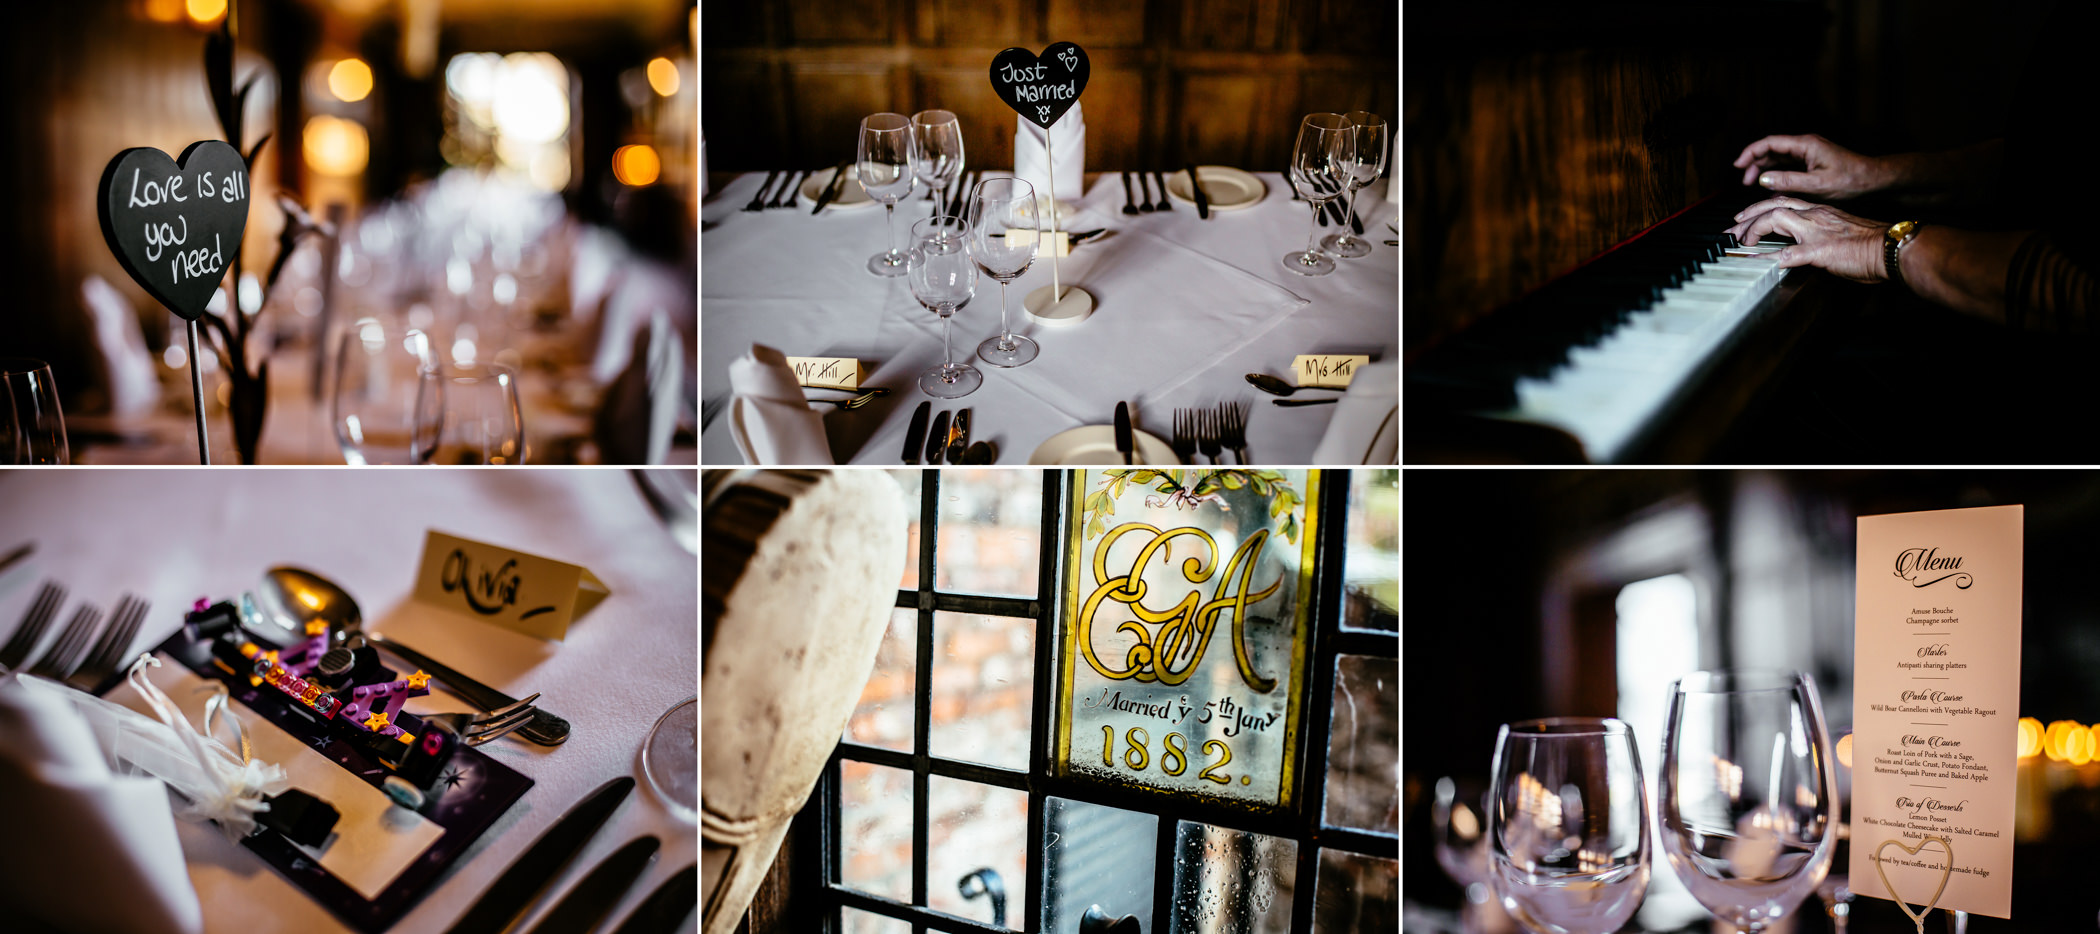 Georgie & steve - Sansom photography Grays Court York Wedding-111